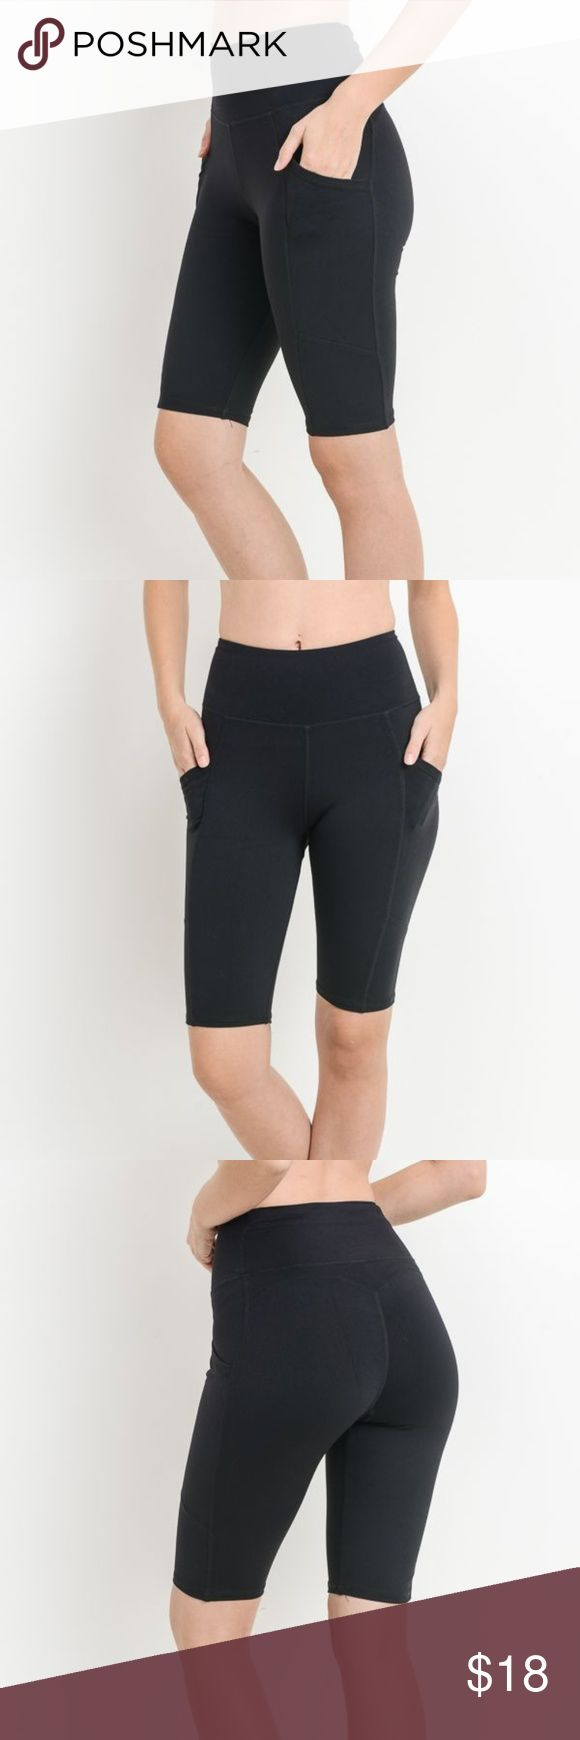 High Waist Short Leggings Featuring Side Pockets Get fit in our high waisted sho…